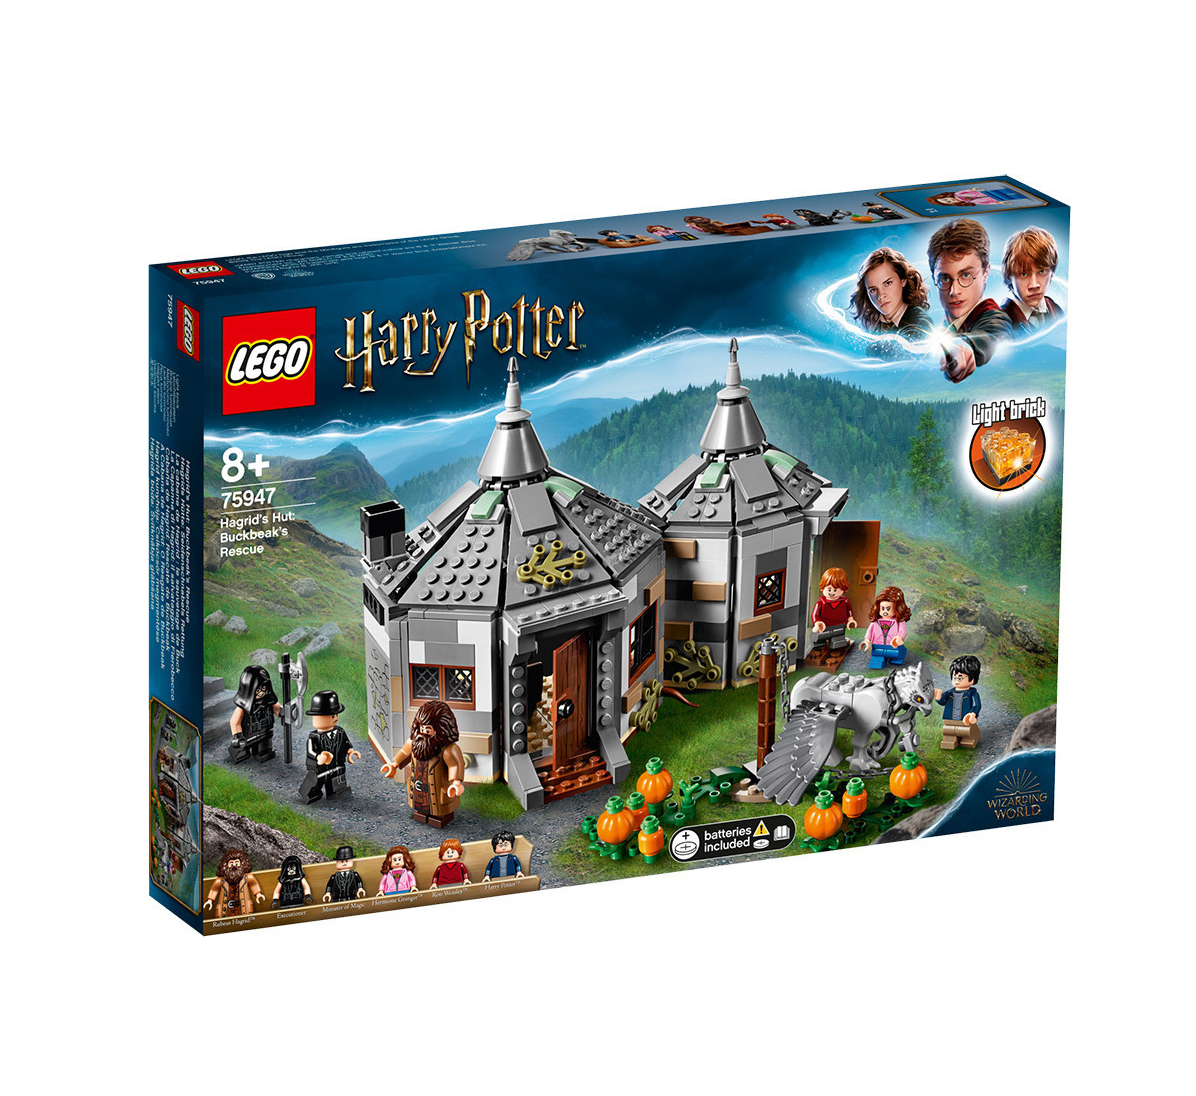 Lego Harry Potter: Hagrid's Hut: Buckbeak's Rescue 75947